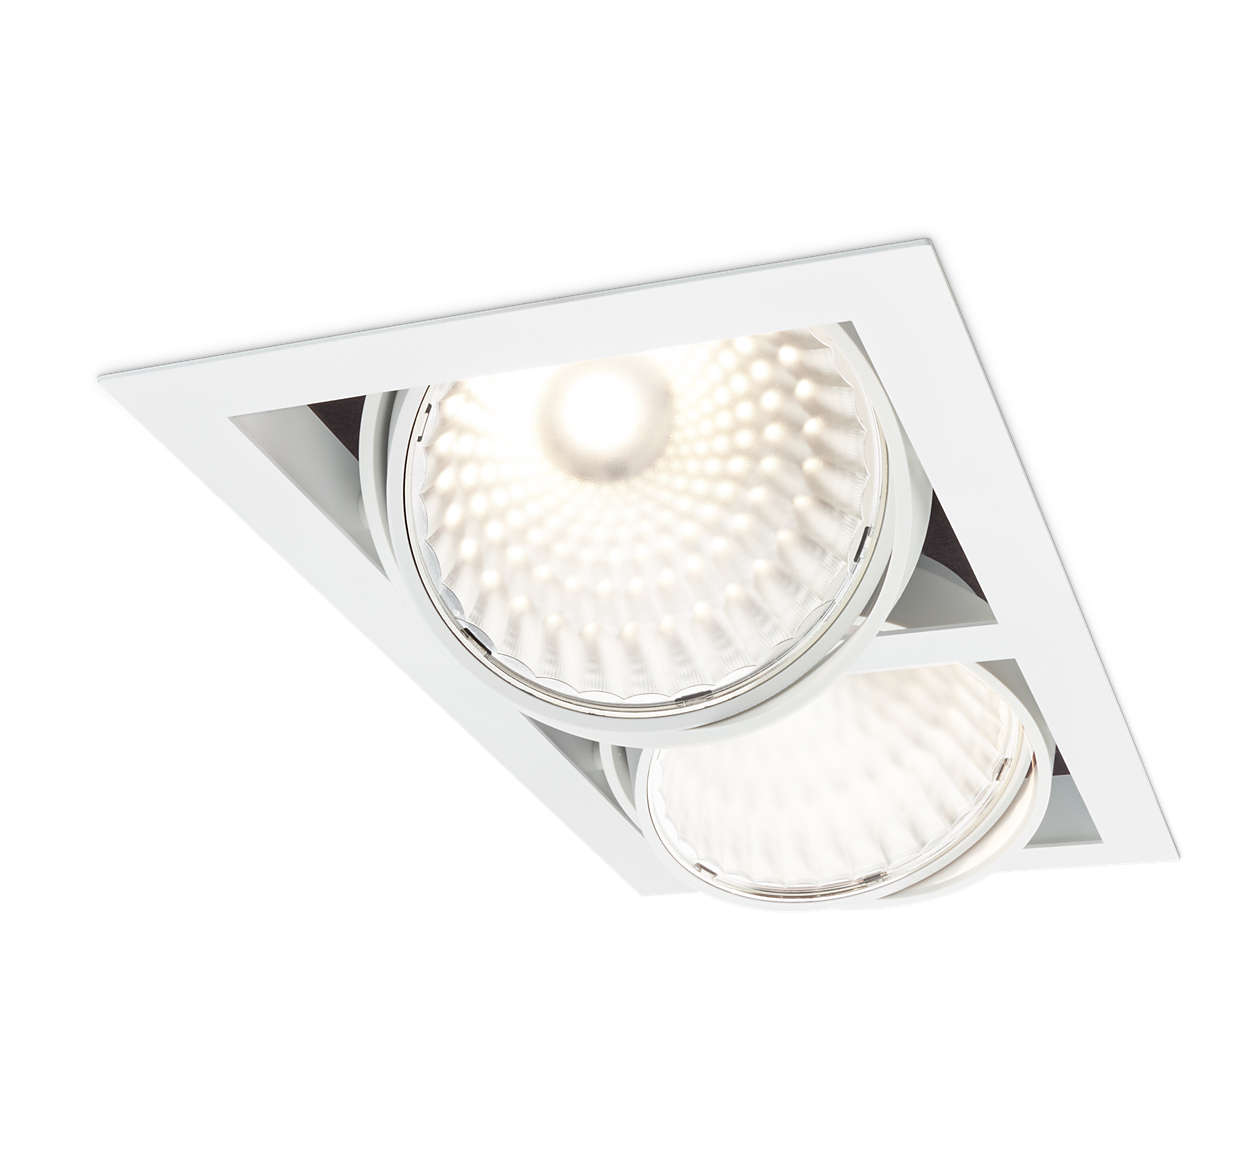 GreenSpace Accent Gridlight